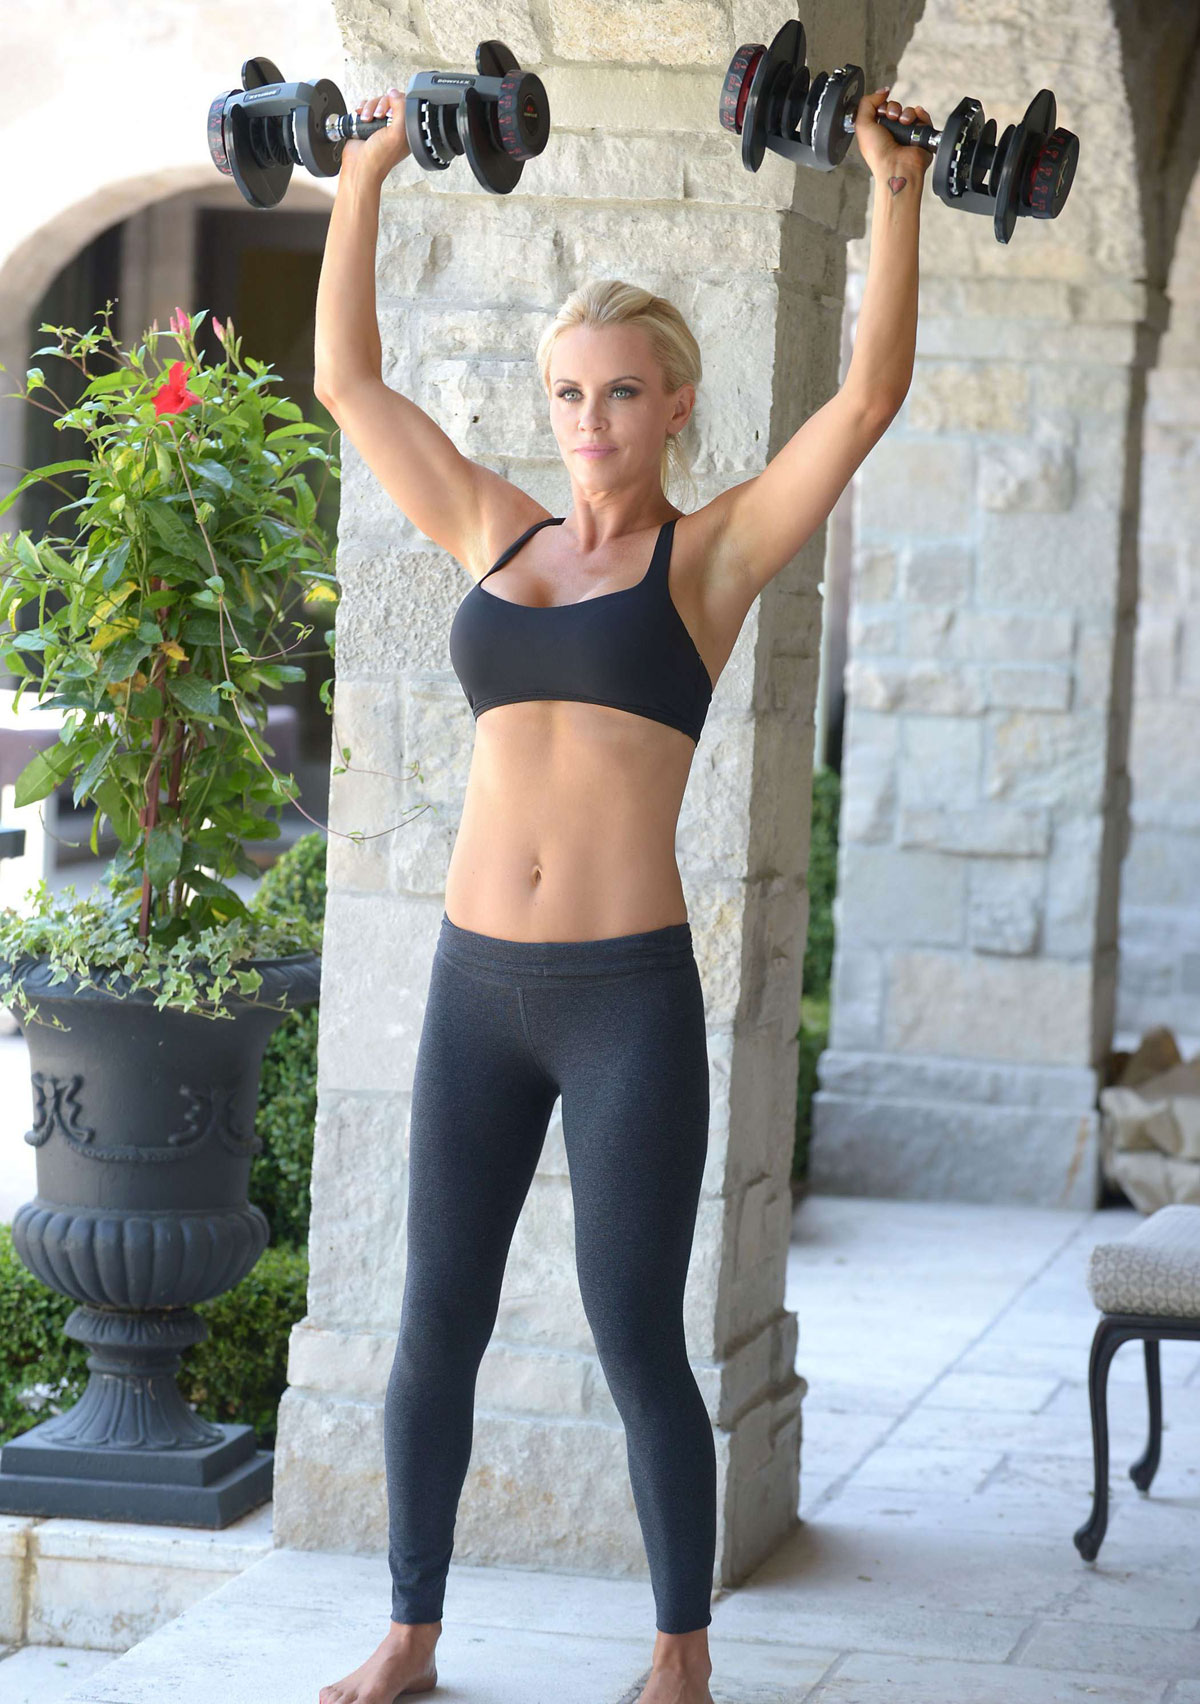 Fitness Girl Wallpaper Hd Jenny Mccarthy In Tights Exercising At Her Home In Chicago